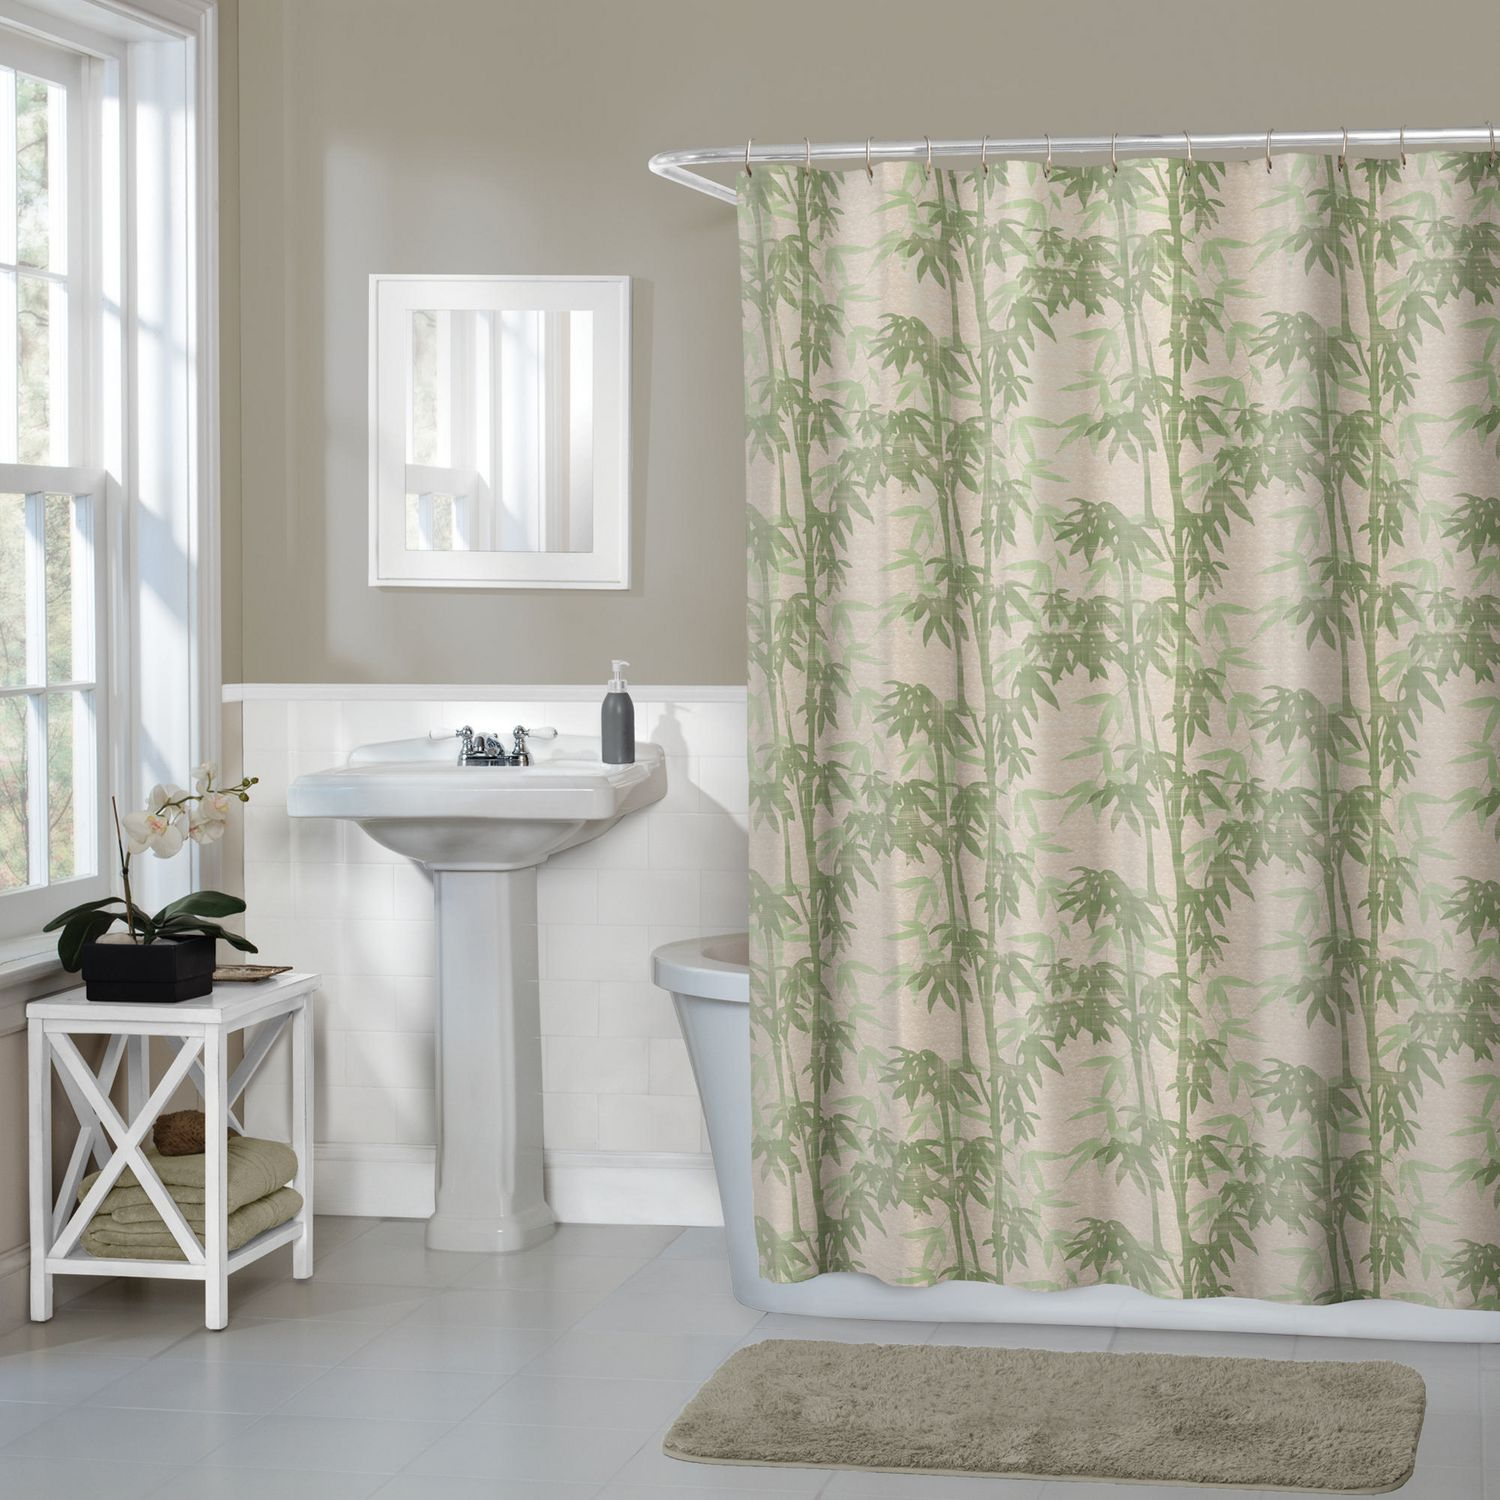 hometrends Home Trends Bamboo Floral Fabric Shower Curtain ...